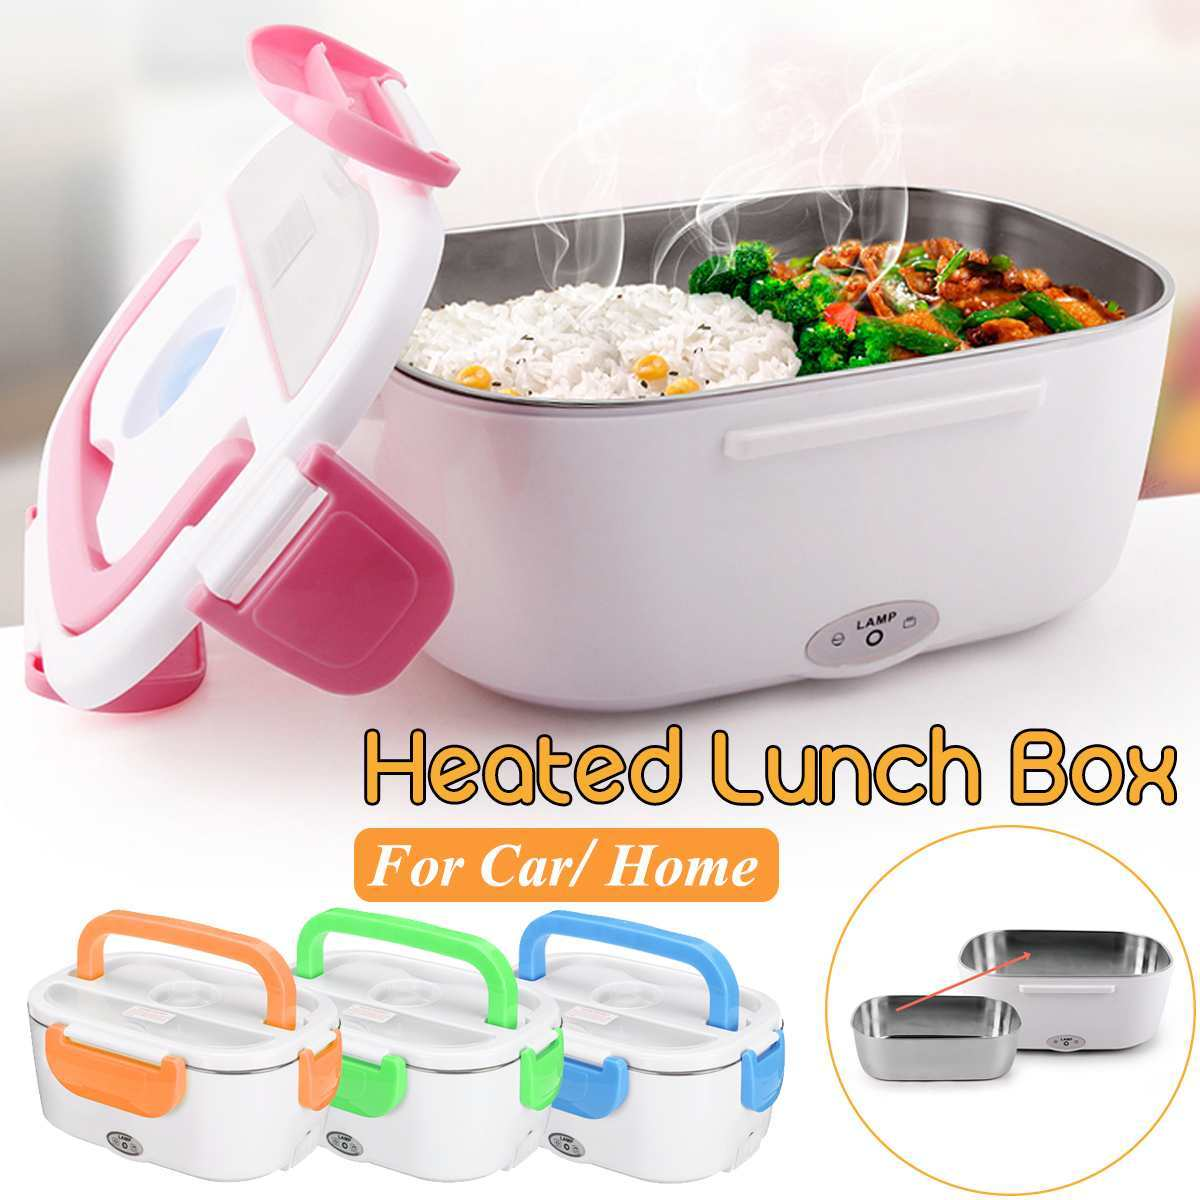 12V-24V 110V 220V Electric Heated Lunch Box Portable 2 In 1 Car& Home US Plug/EU Plug Bento Boxes Stainless Steel Food Container